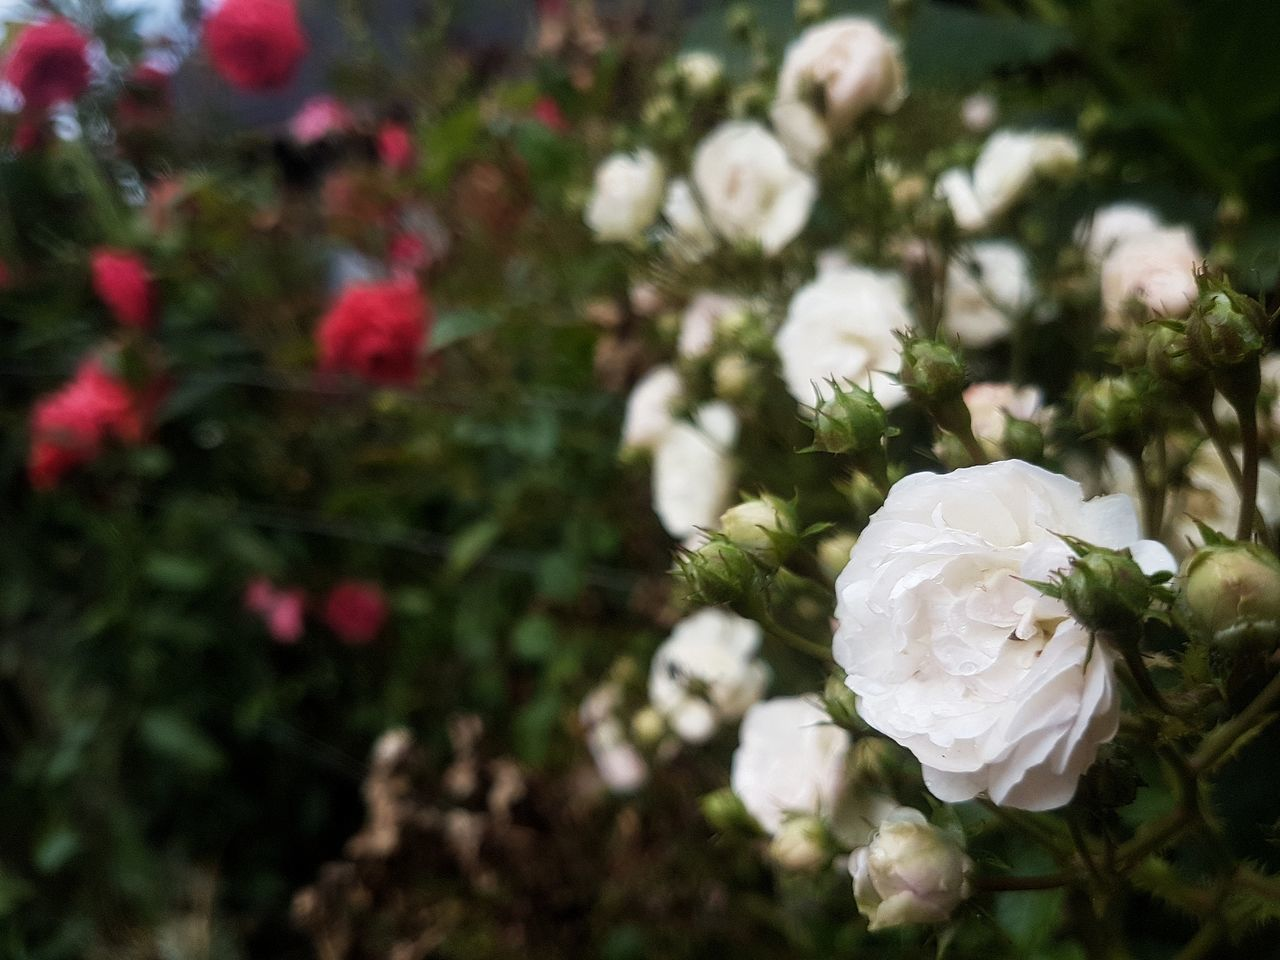 [TFC] Flower Growth Nature Plant Close-up Freshness Beauty In Nature No People Fragility Day Flower Head Outdoors Tranquility Nature Scenics Freshness Green Color Inspirations Red White Colors Lifestyles Roses Flowers Garden